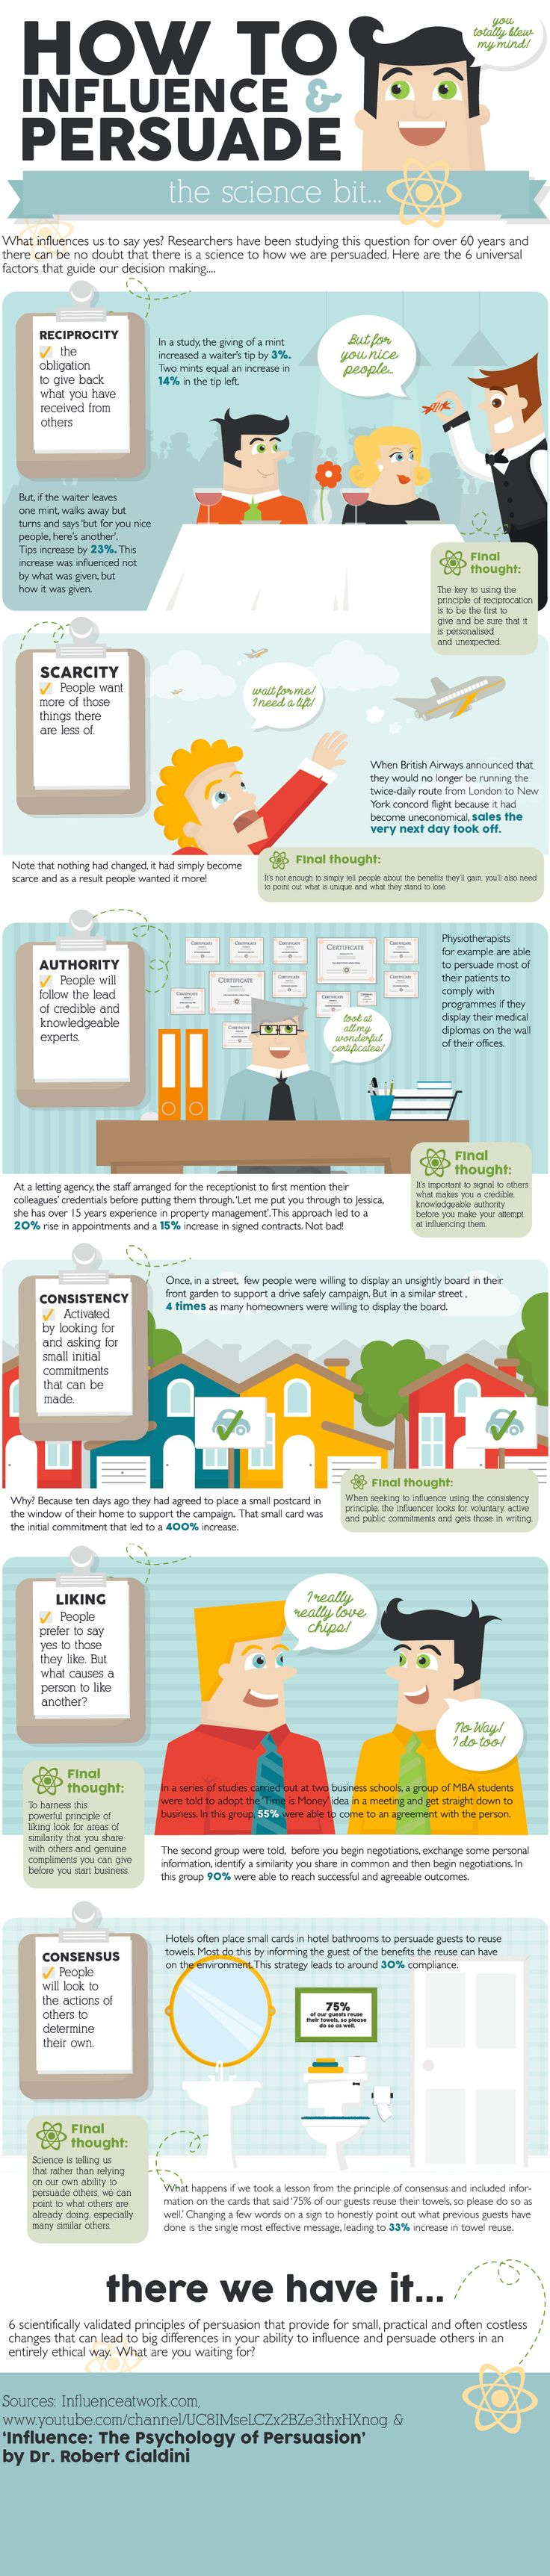 How to Influence and Persuade #Infographic - Research based notes